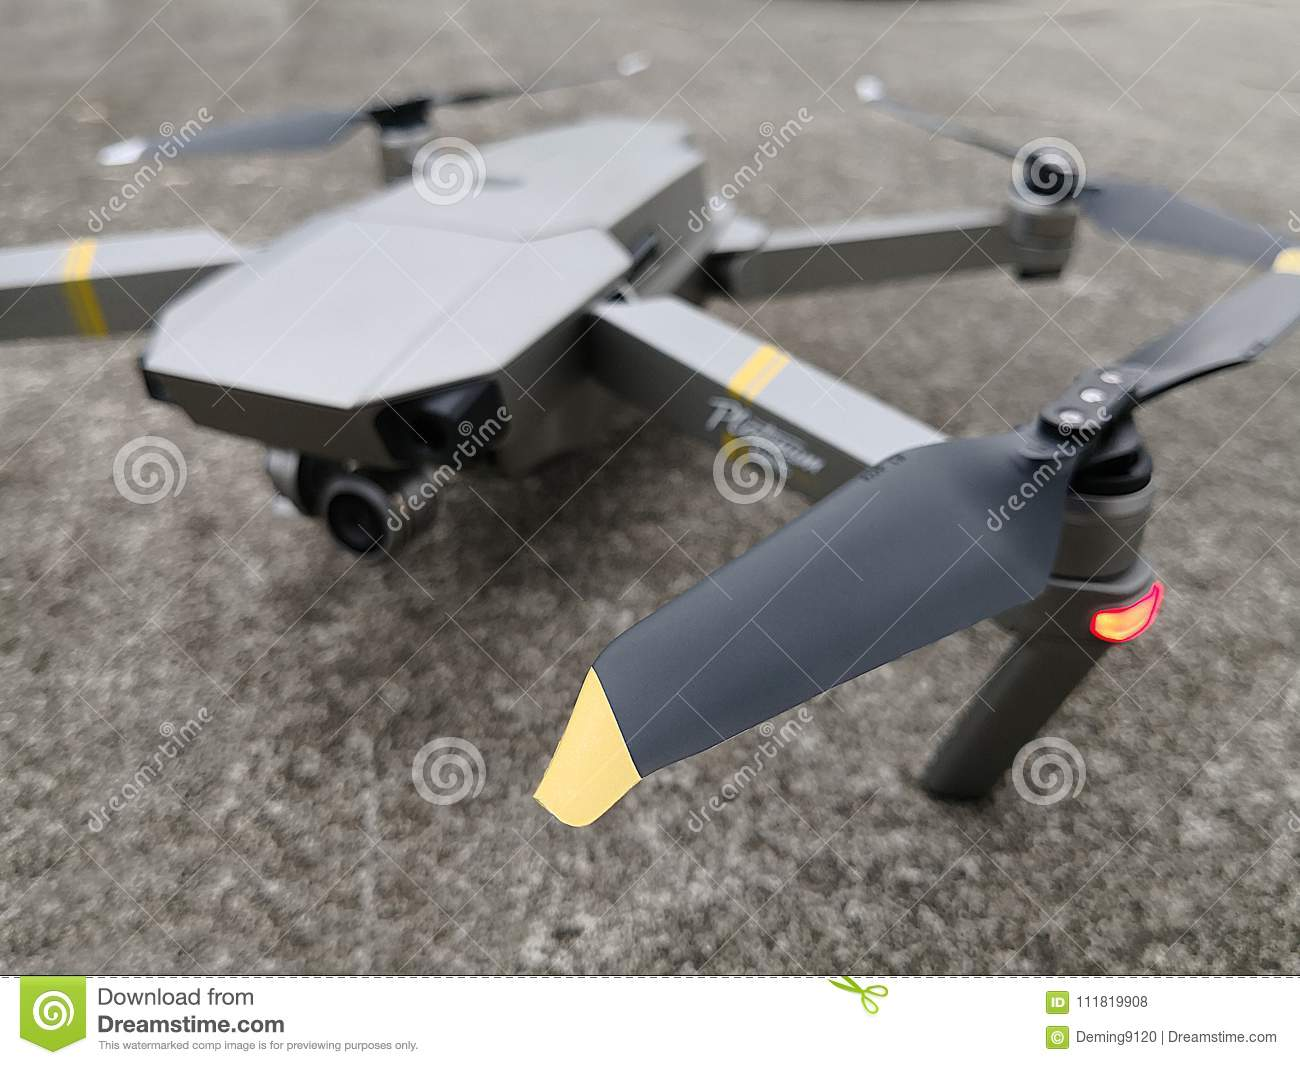 Propellor Blades Of The DJI Mavic Pro Drone Editorial Stock Photo